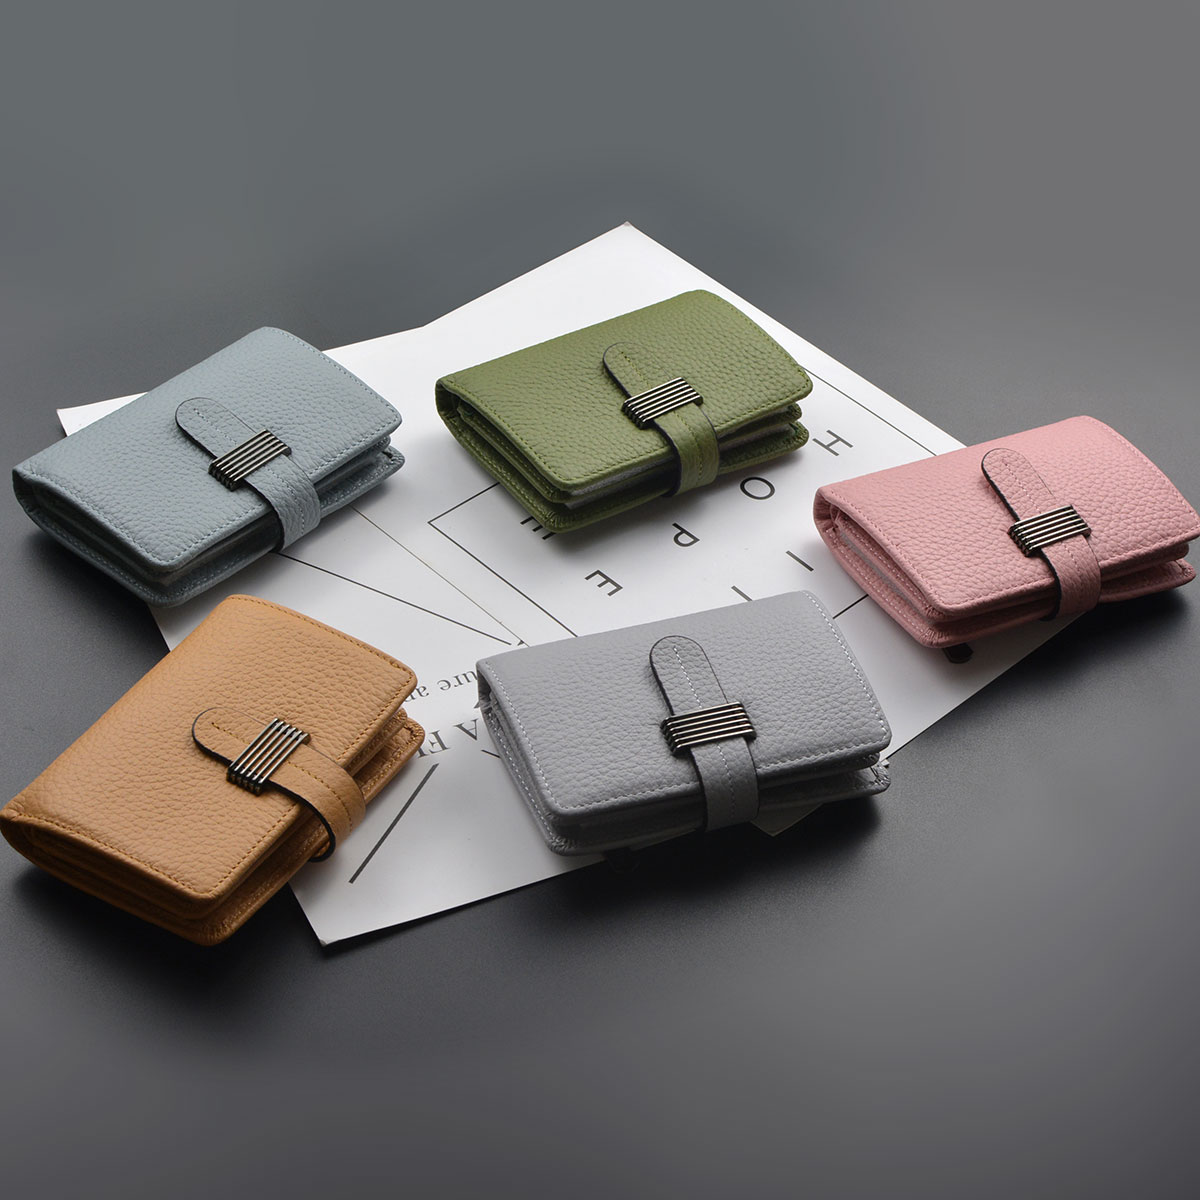 2018 Rushed Real Style Of European And American Minimalist, Seat Folding Leather, Lychee Stripe, Cowgirl, Short Wallet, Wallet.